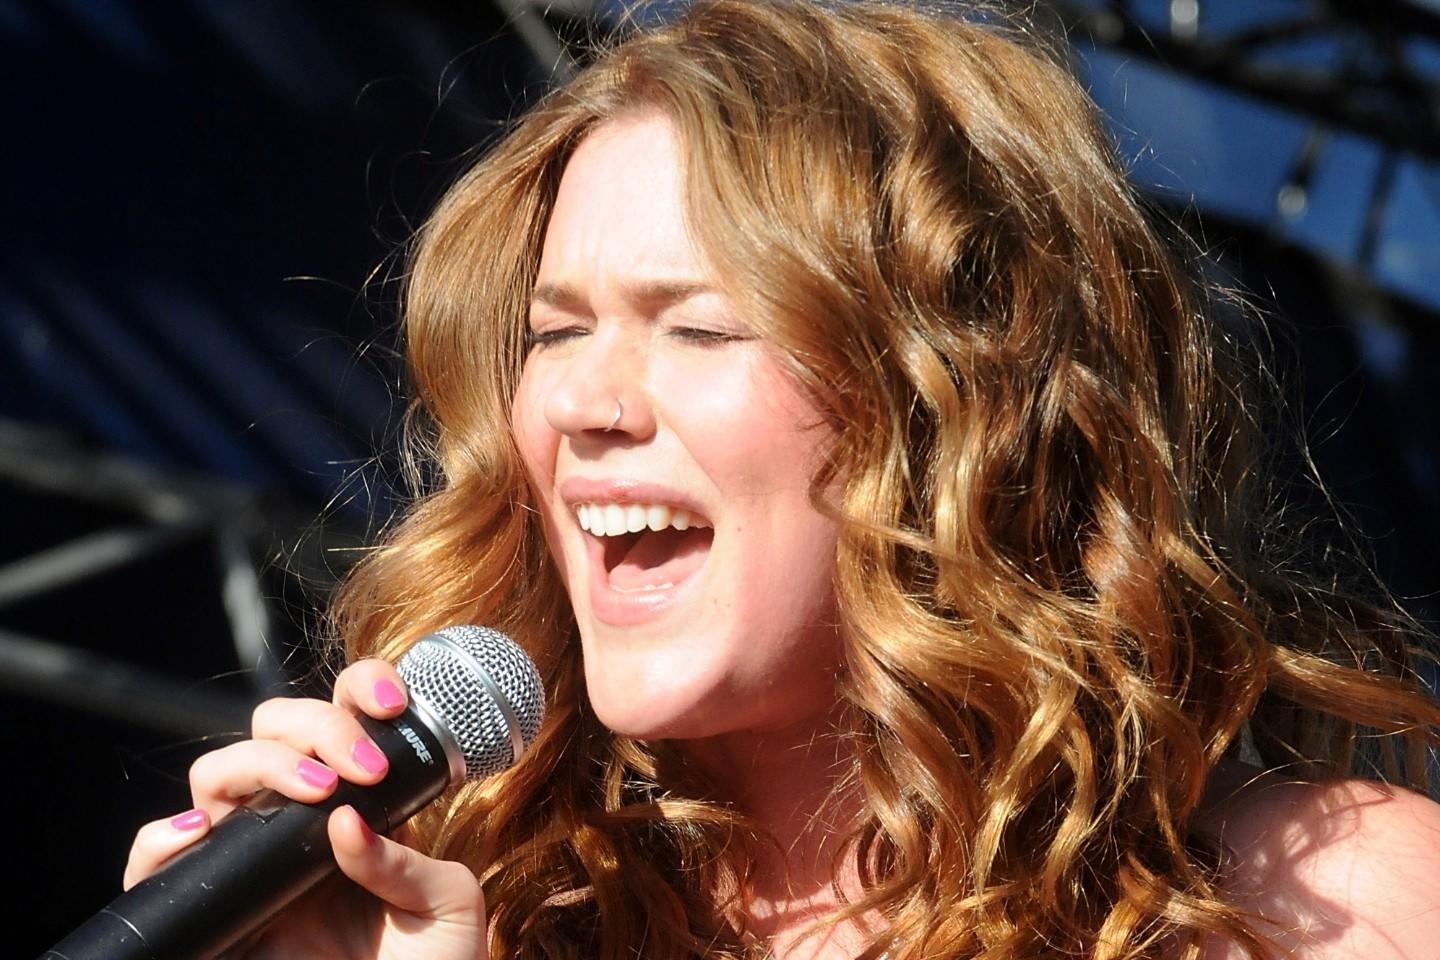 Joss Stone Tour 2020 Usa Joss Stone Tickets | Joss Stone Tour Dates and Concert Tickets